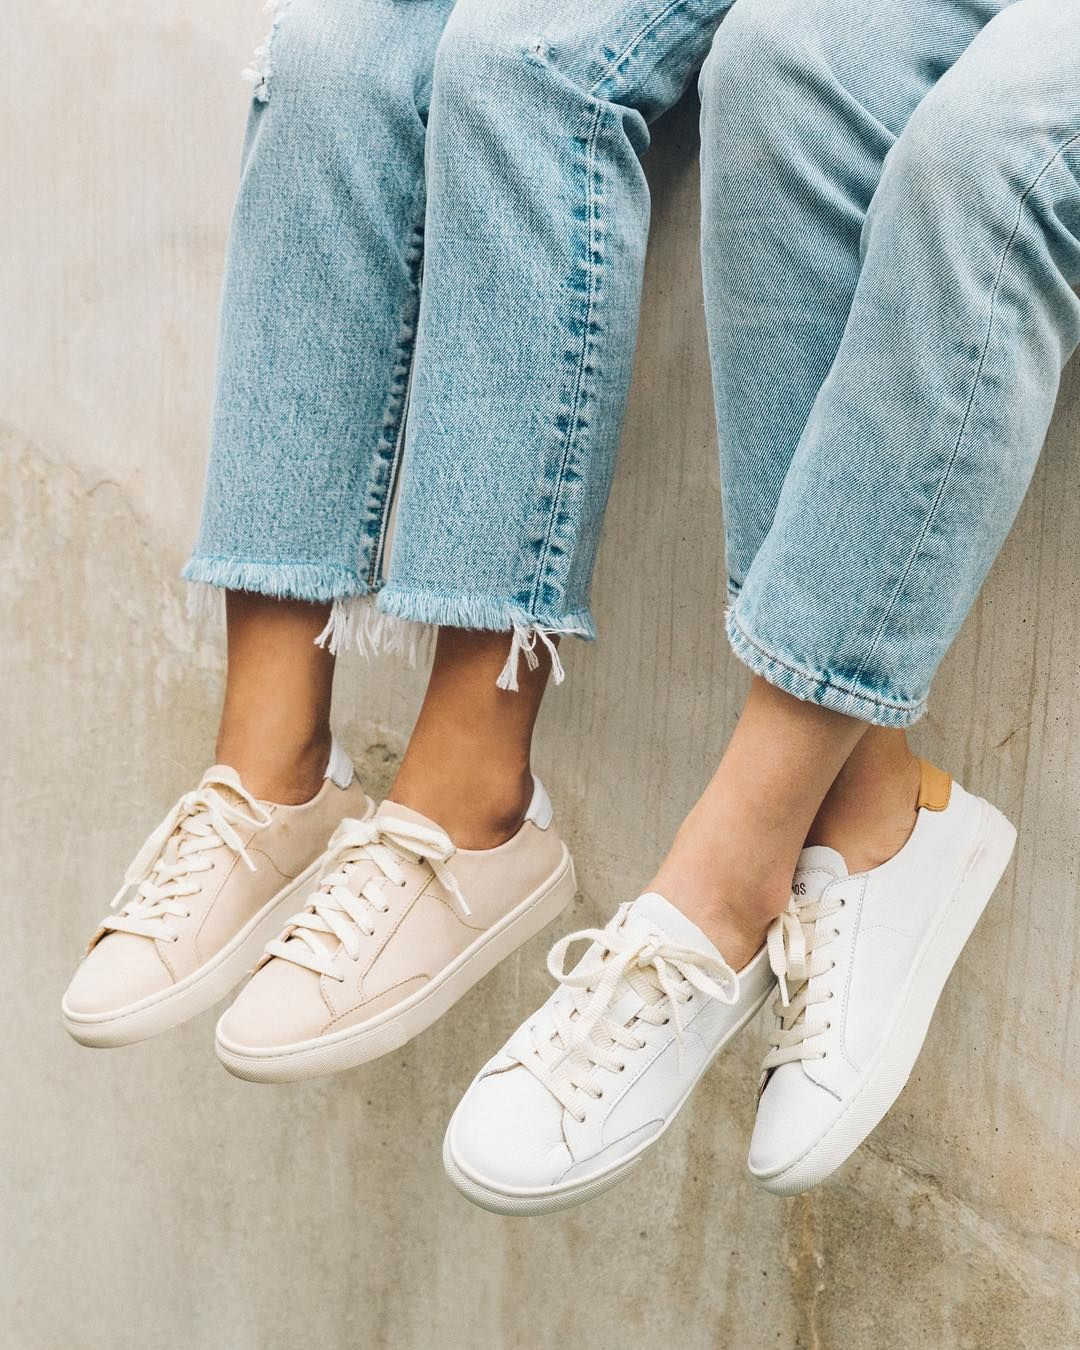 Soludos, Sneakers, Sneakers outfit